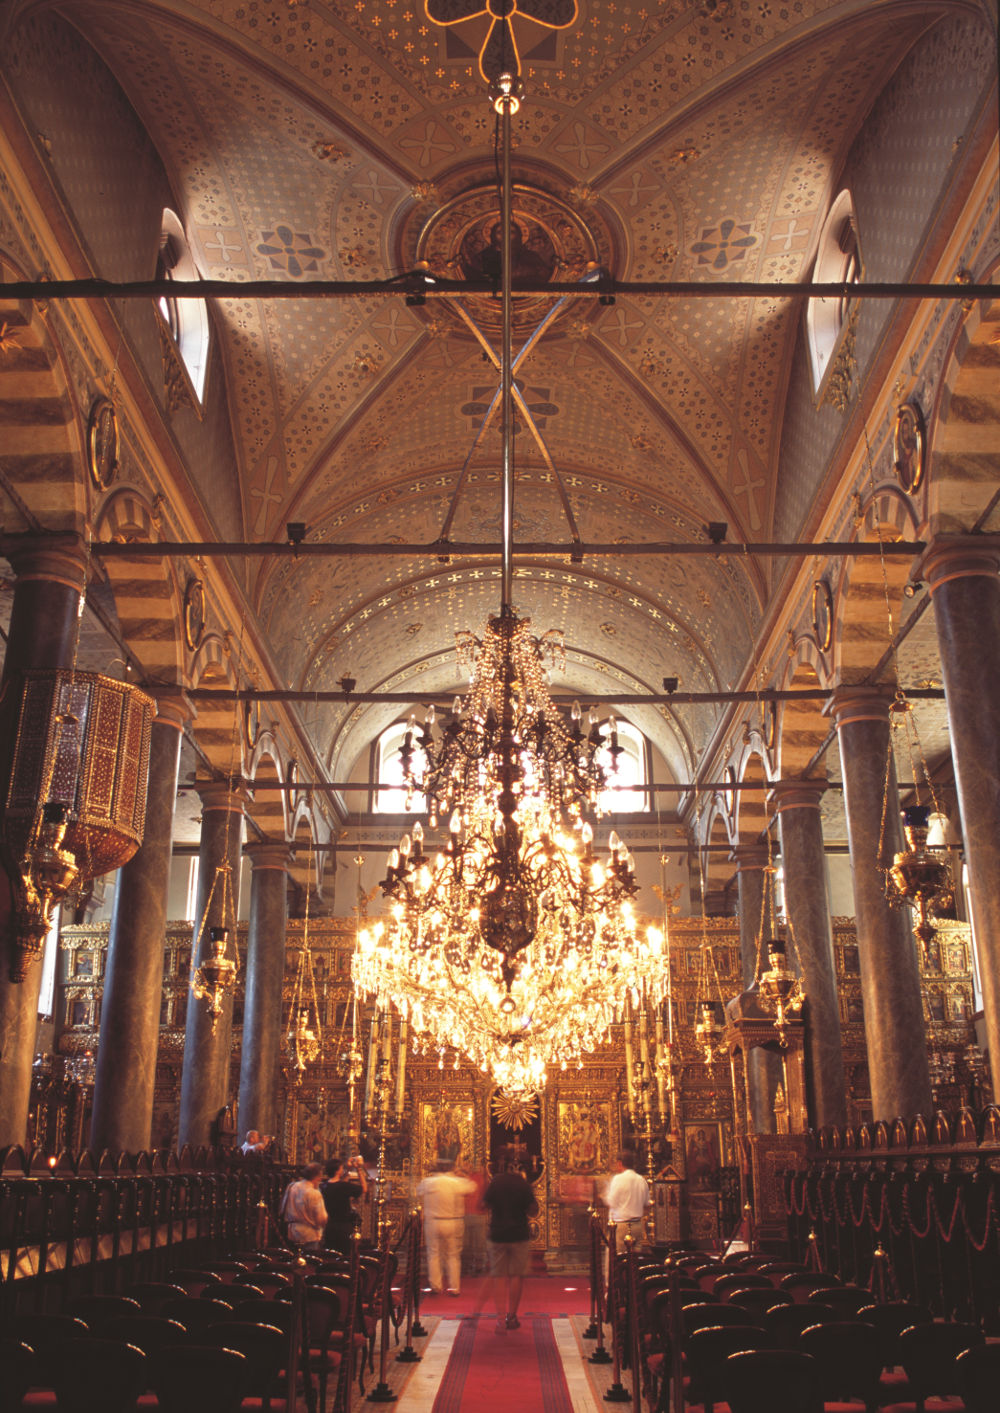 Ecumenical Patriarchate, Istanbul